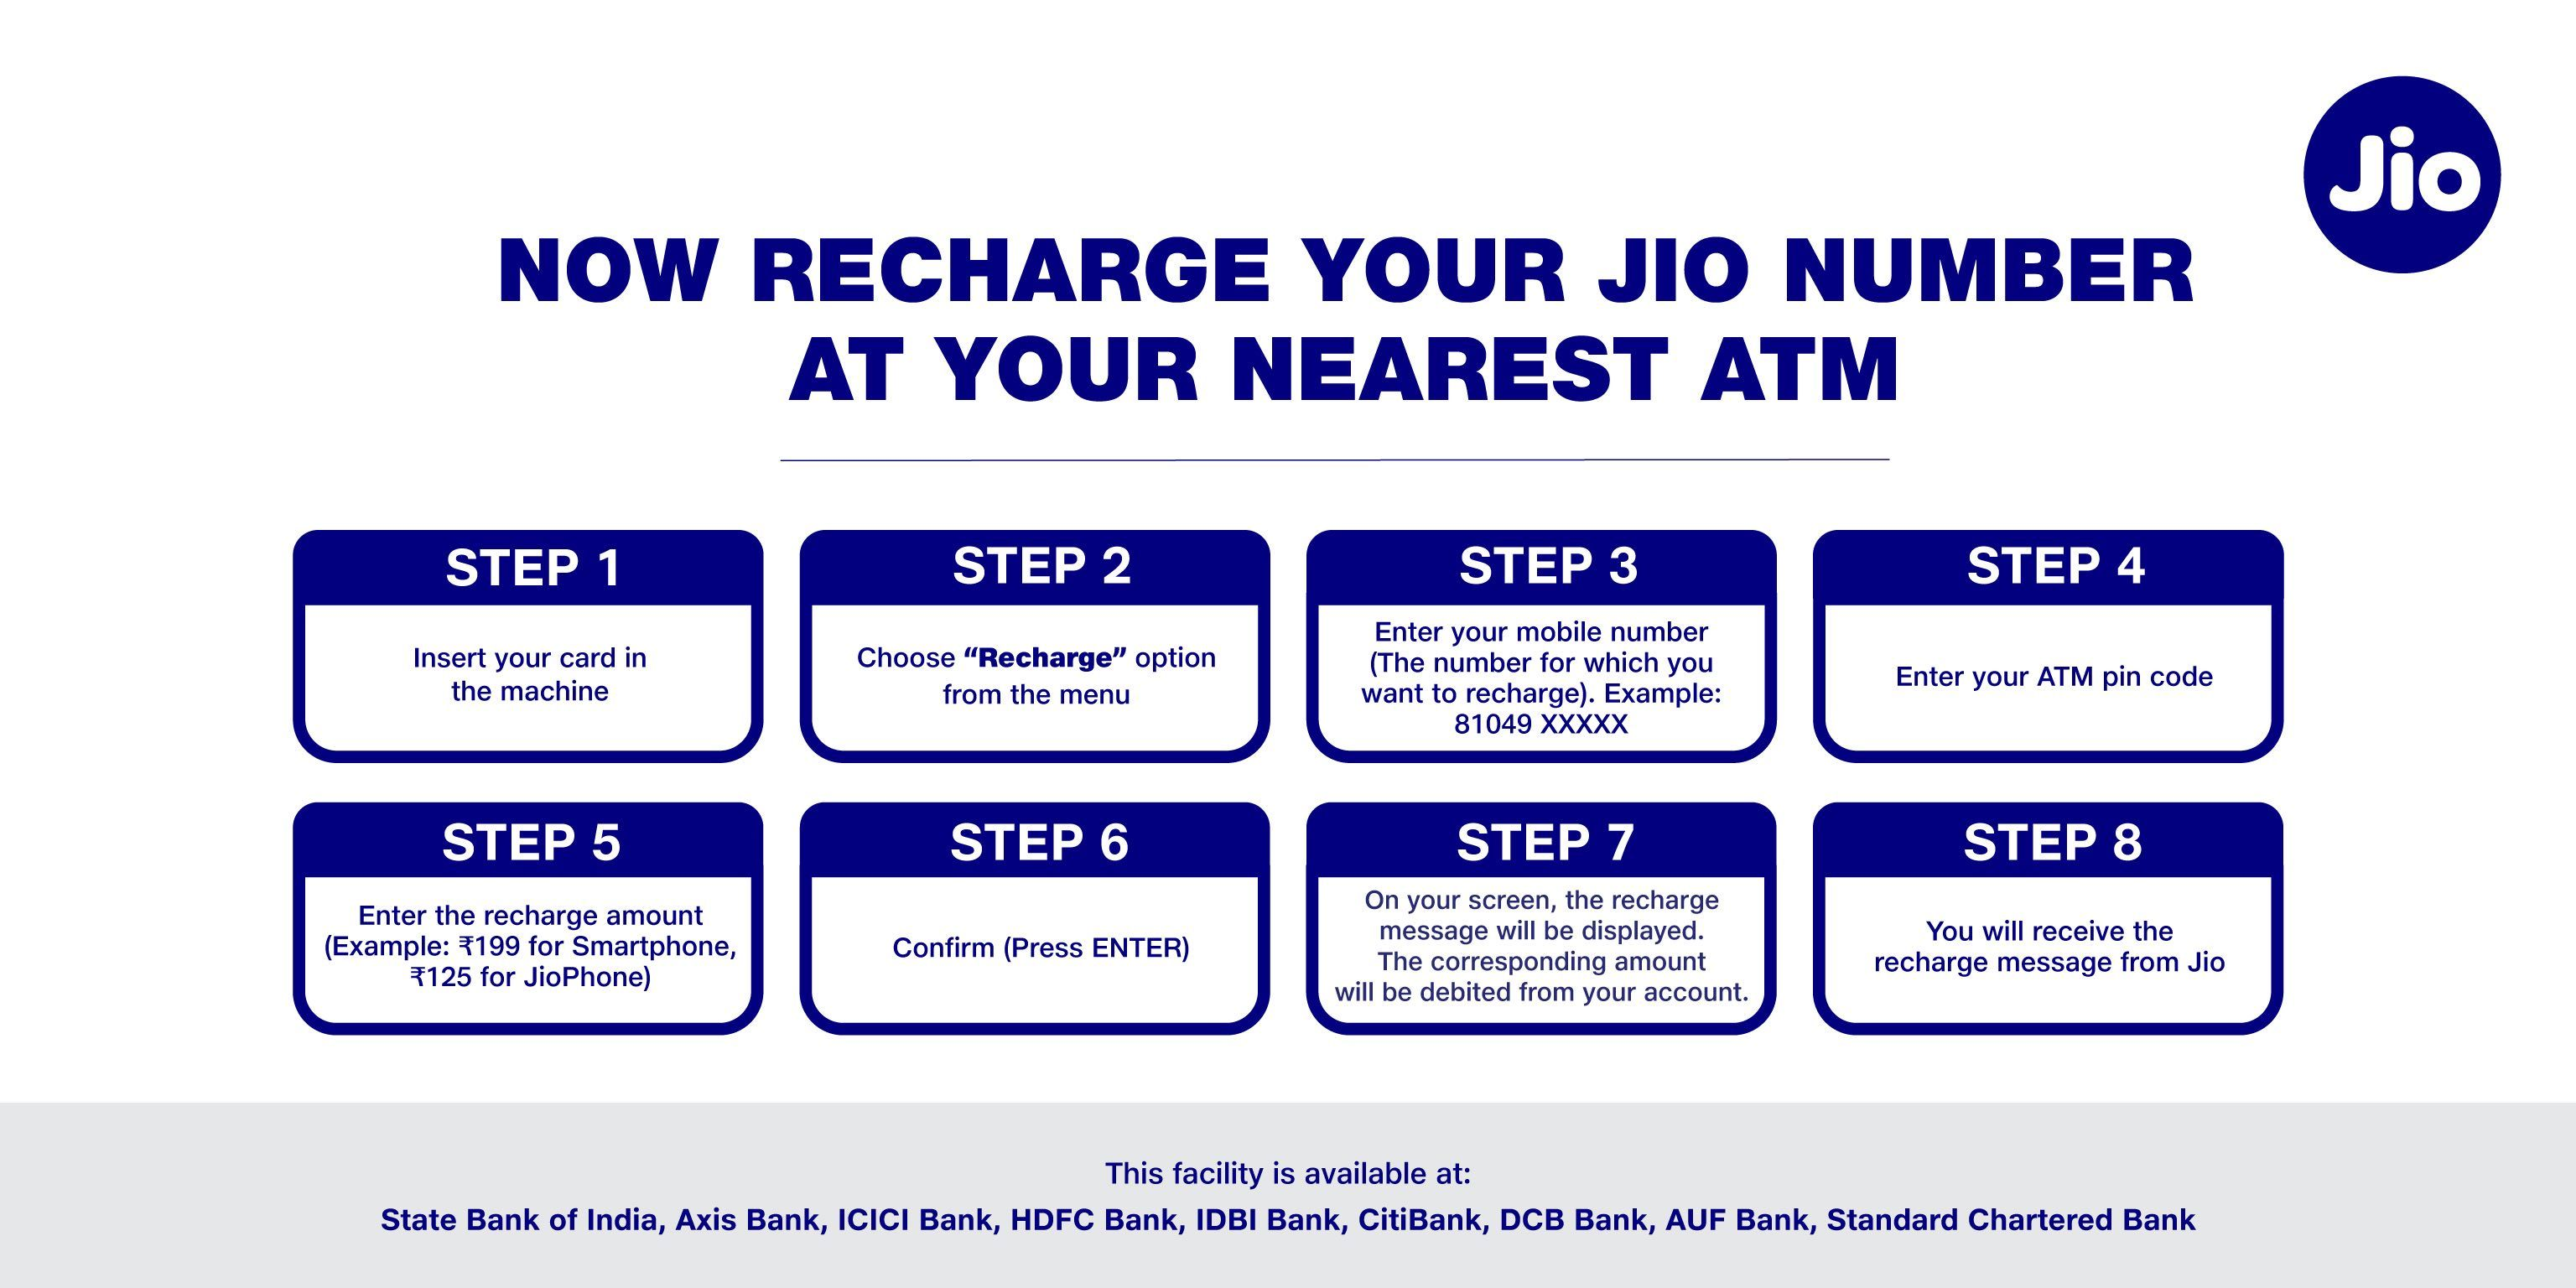 Reliance Jio ATM recharge process